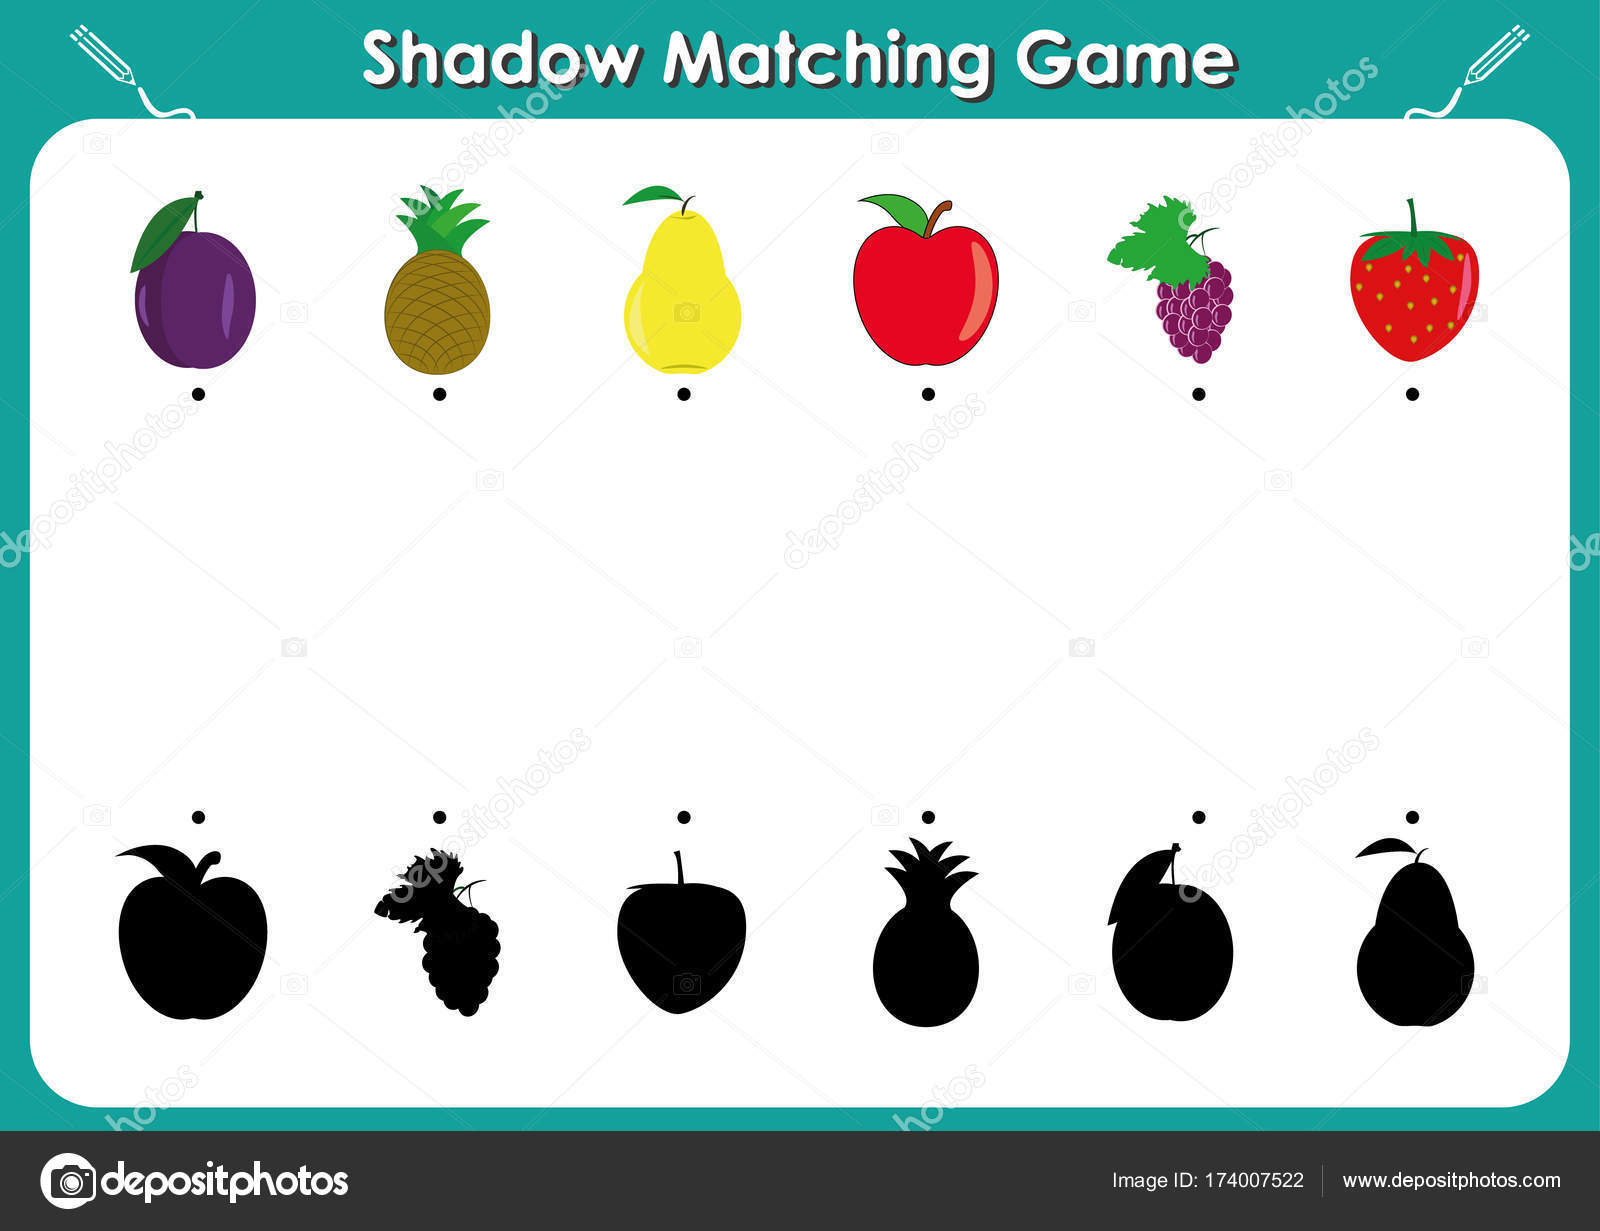 Shadow Matching Worksheets For Preschool